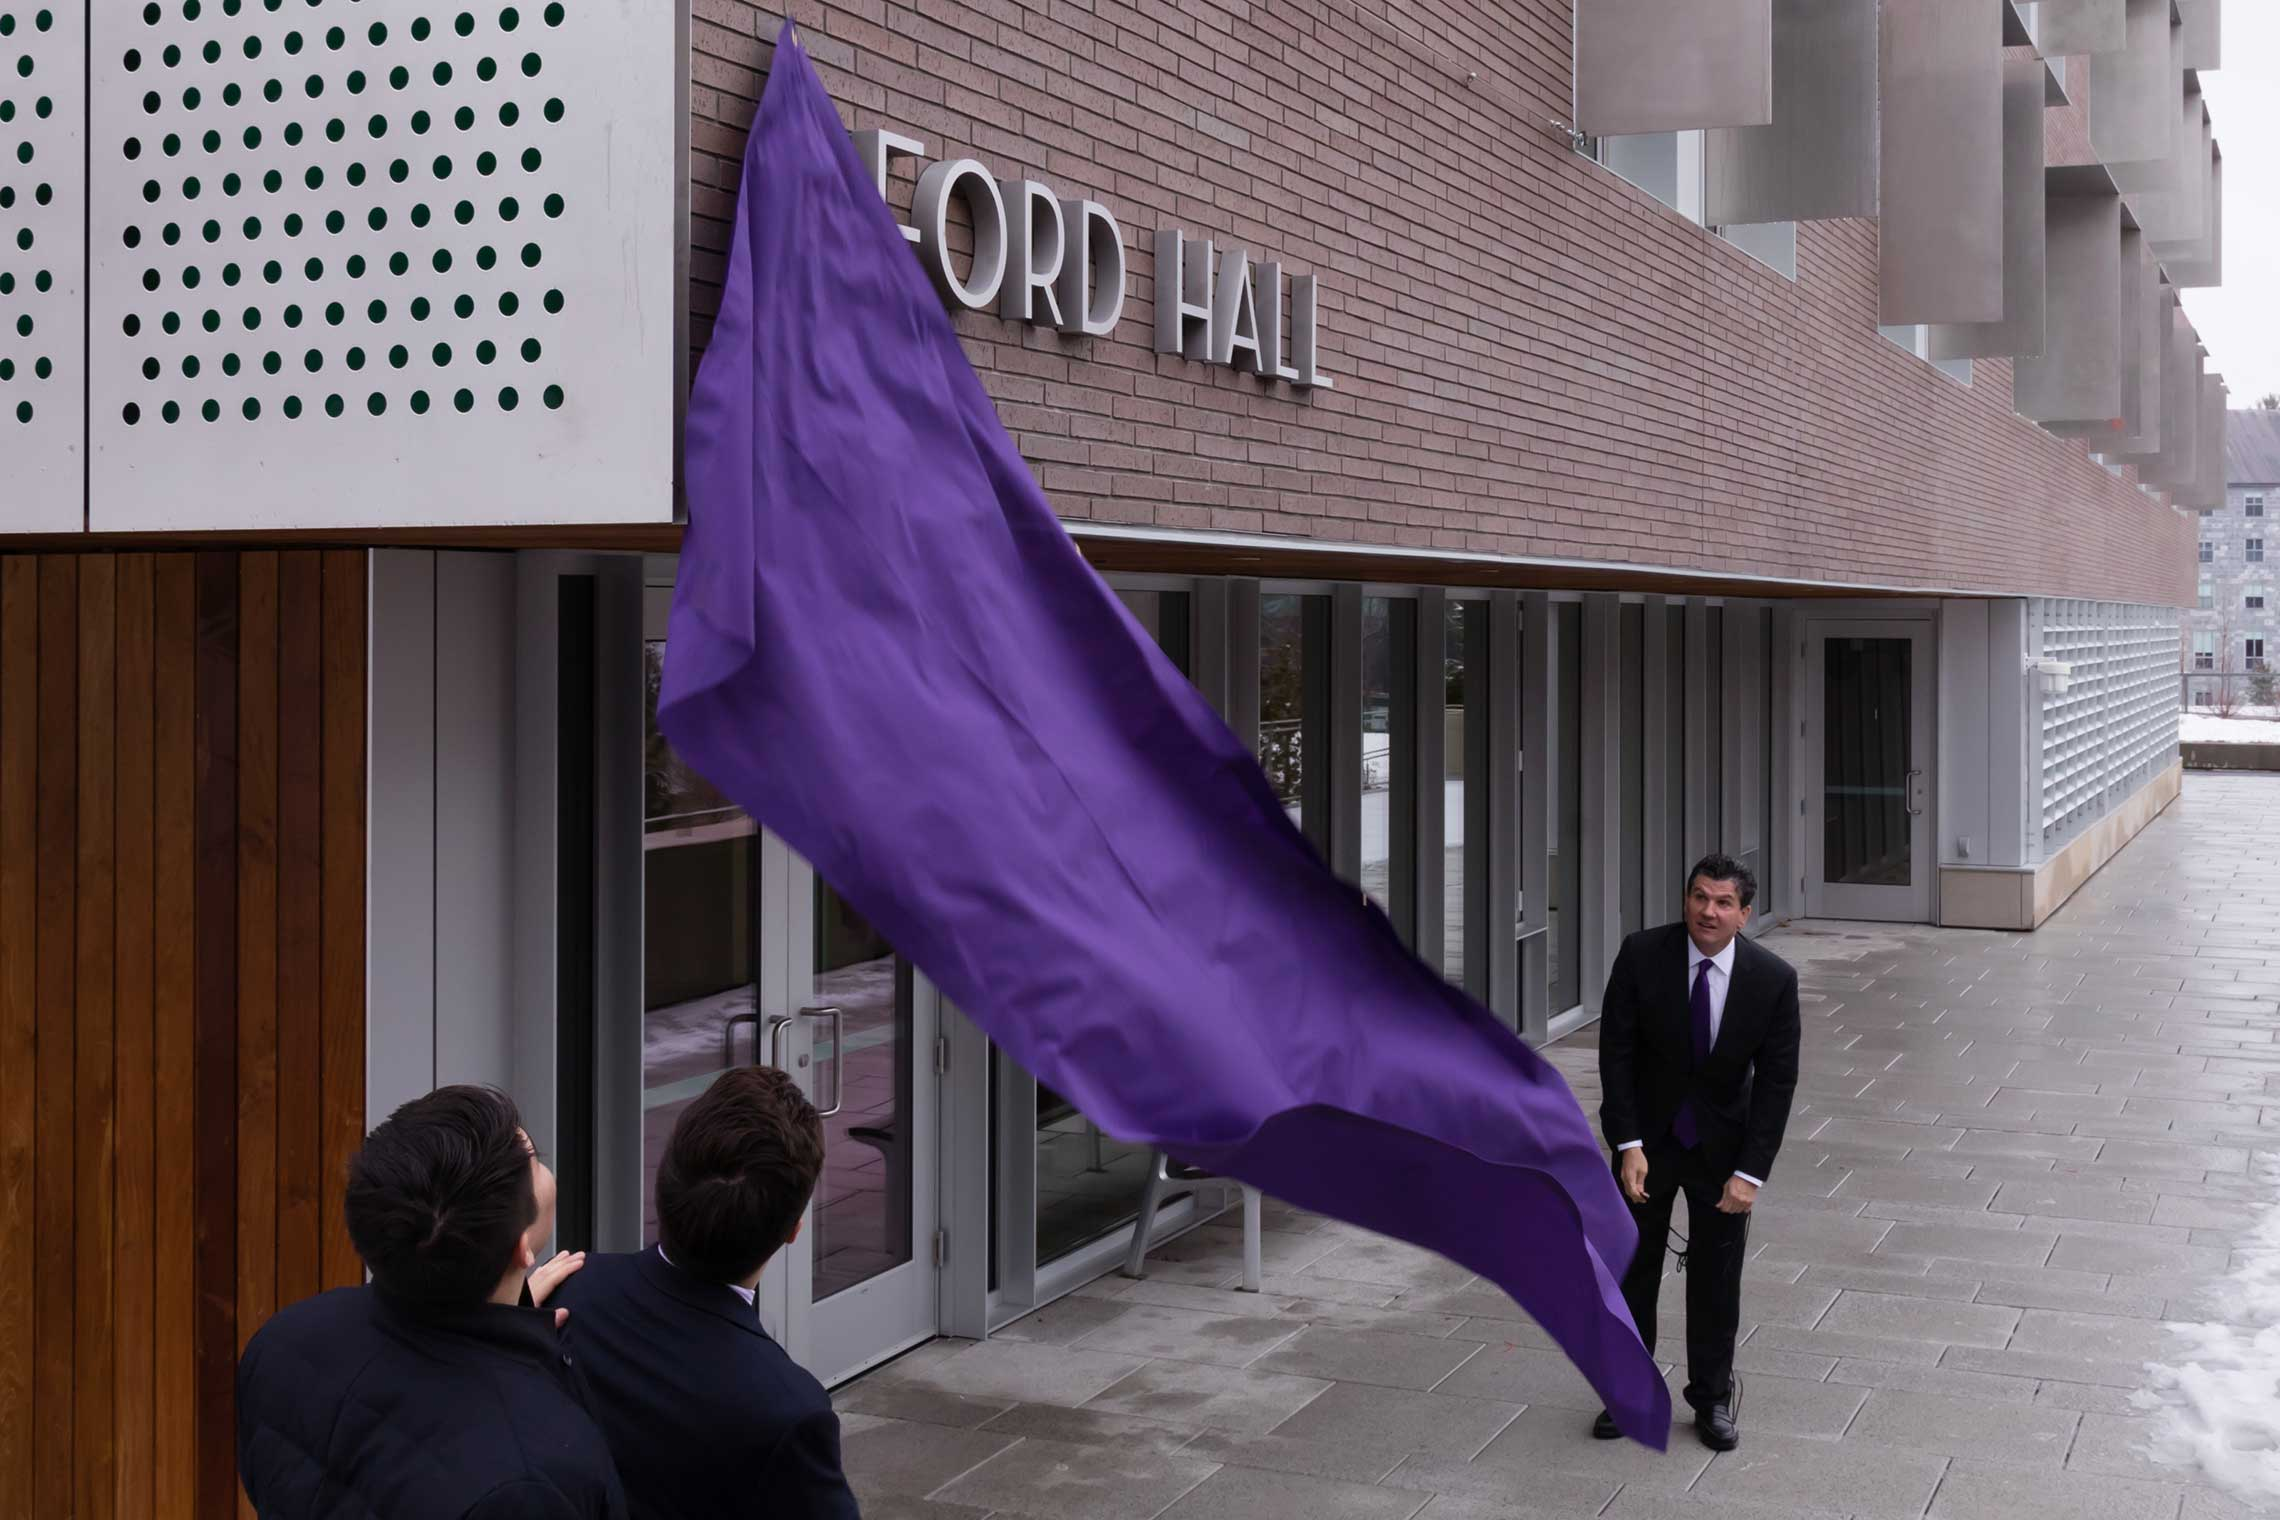 The dedication of Ford Hall